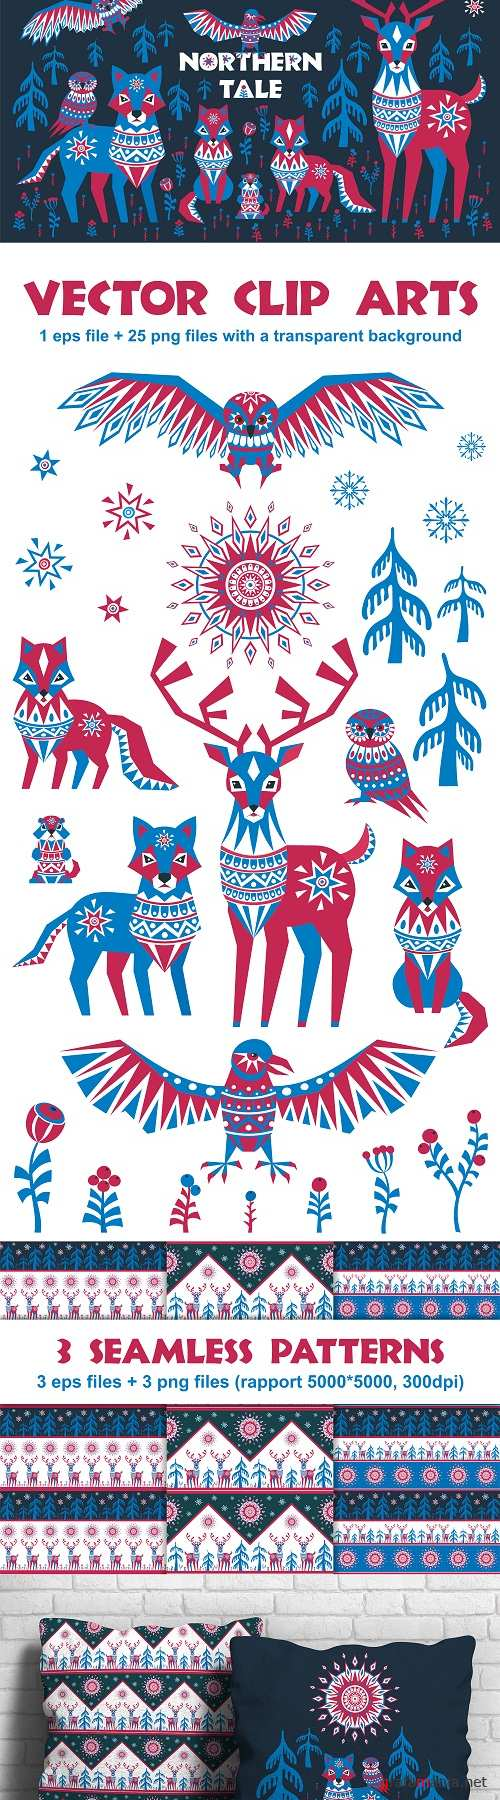 Northern tale. Arctic animals in Tribal style - 83300